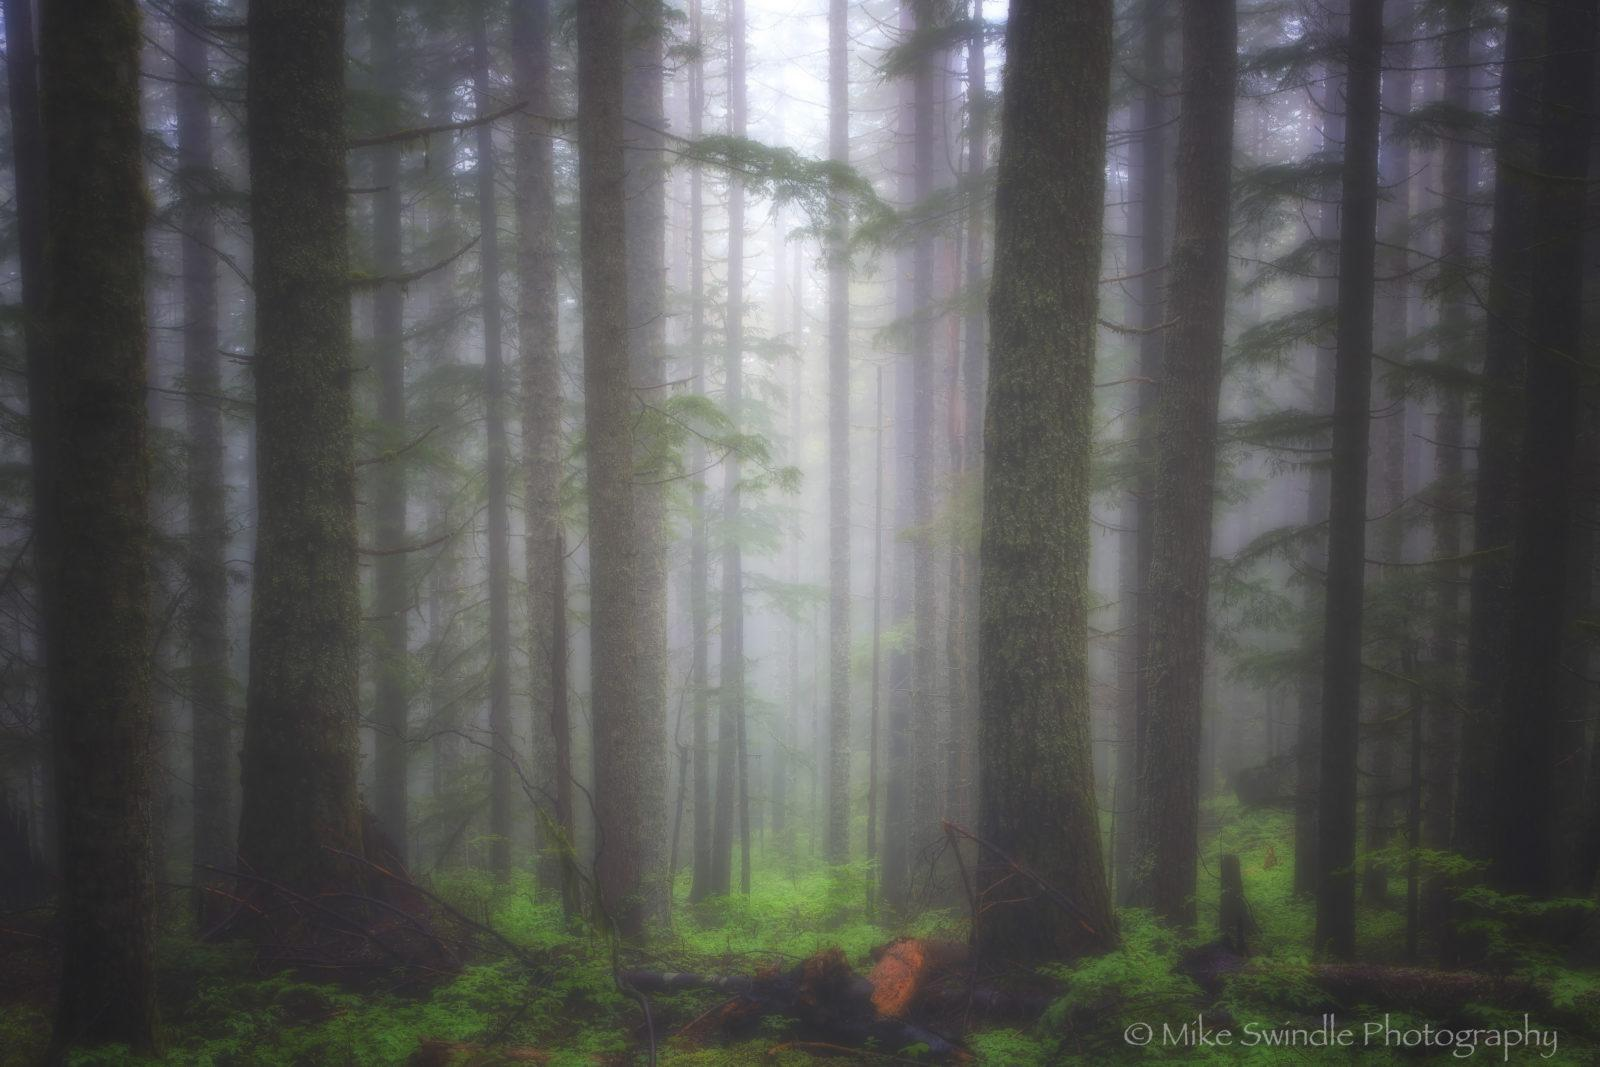 Today's Photo Of The Day is Foggy Forest by Michael Swindle. Location: Columbia River Gorge, Oregon.